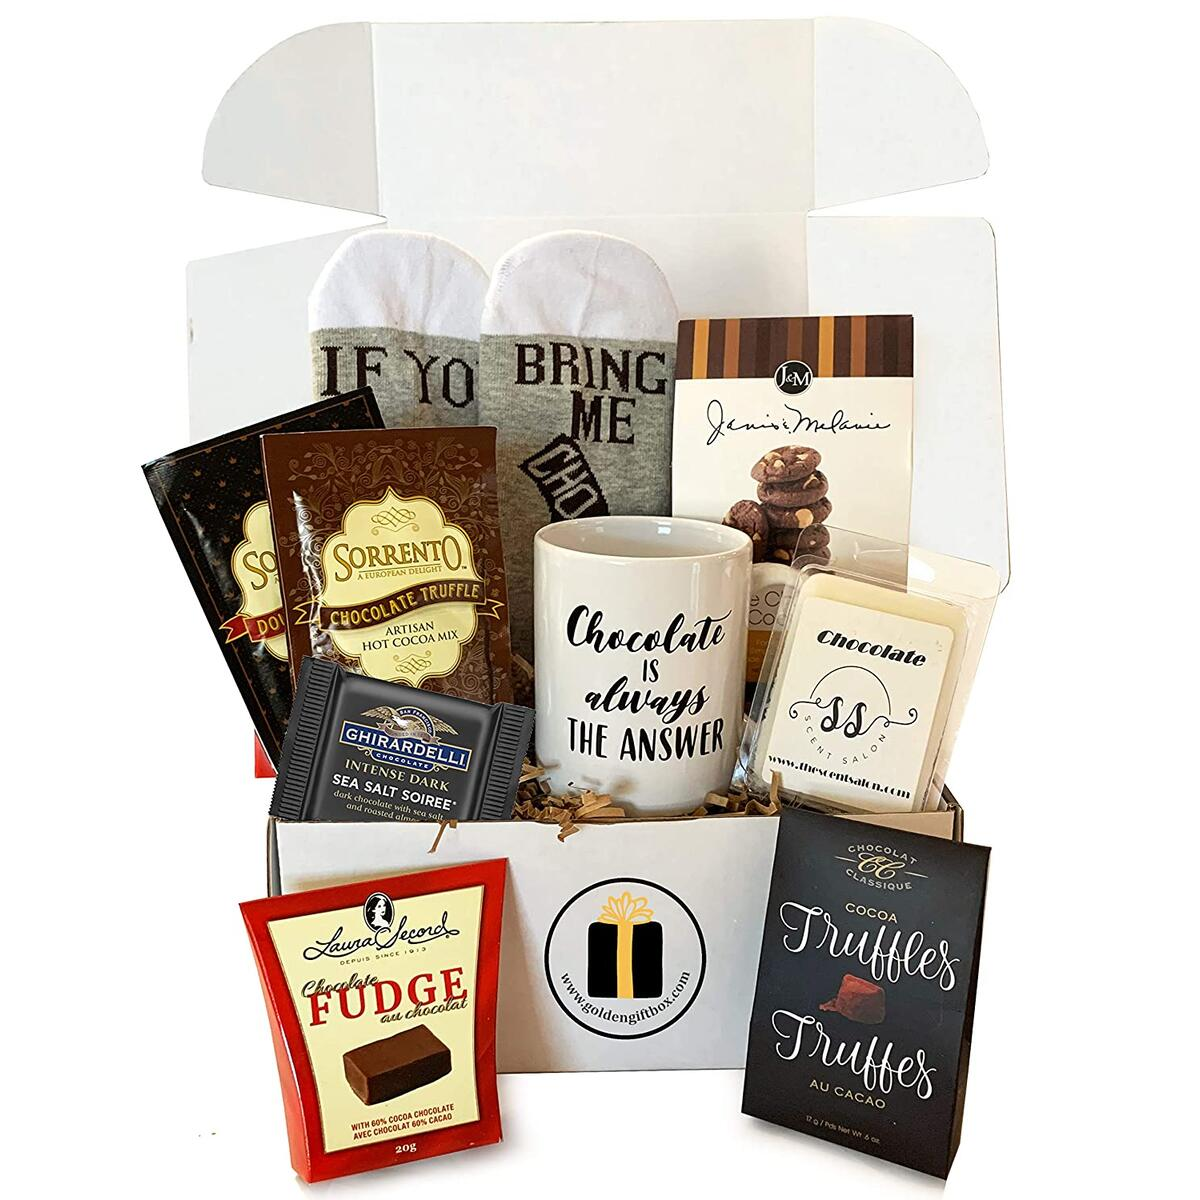 Gourmet Chocolate Gift Sets, Gourmet Cocoas, Chocolate Cookies, Truffles and Ghirardelli